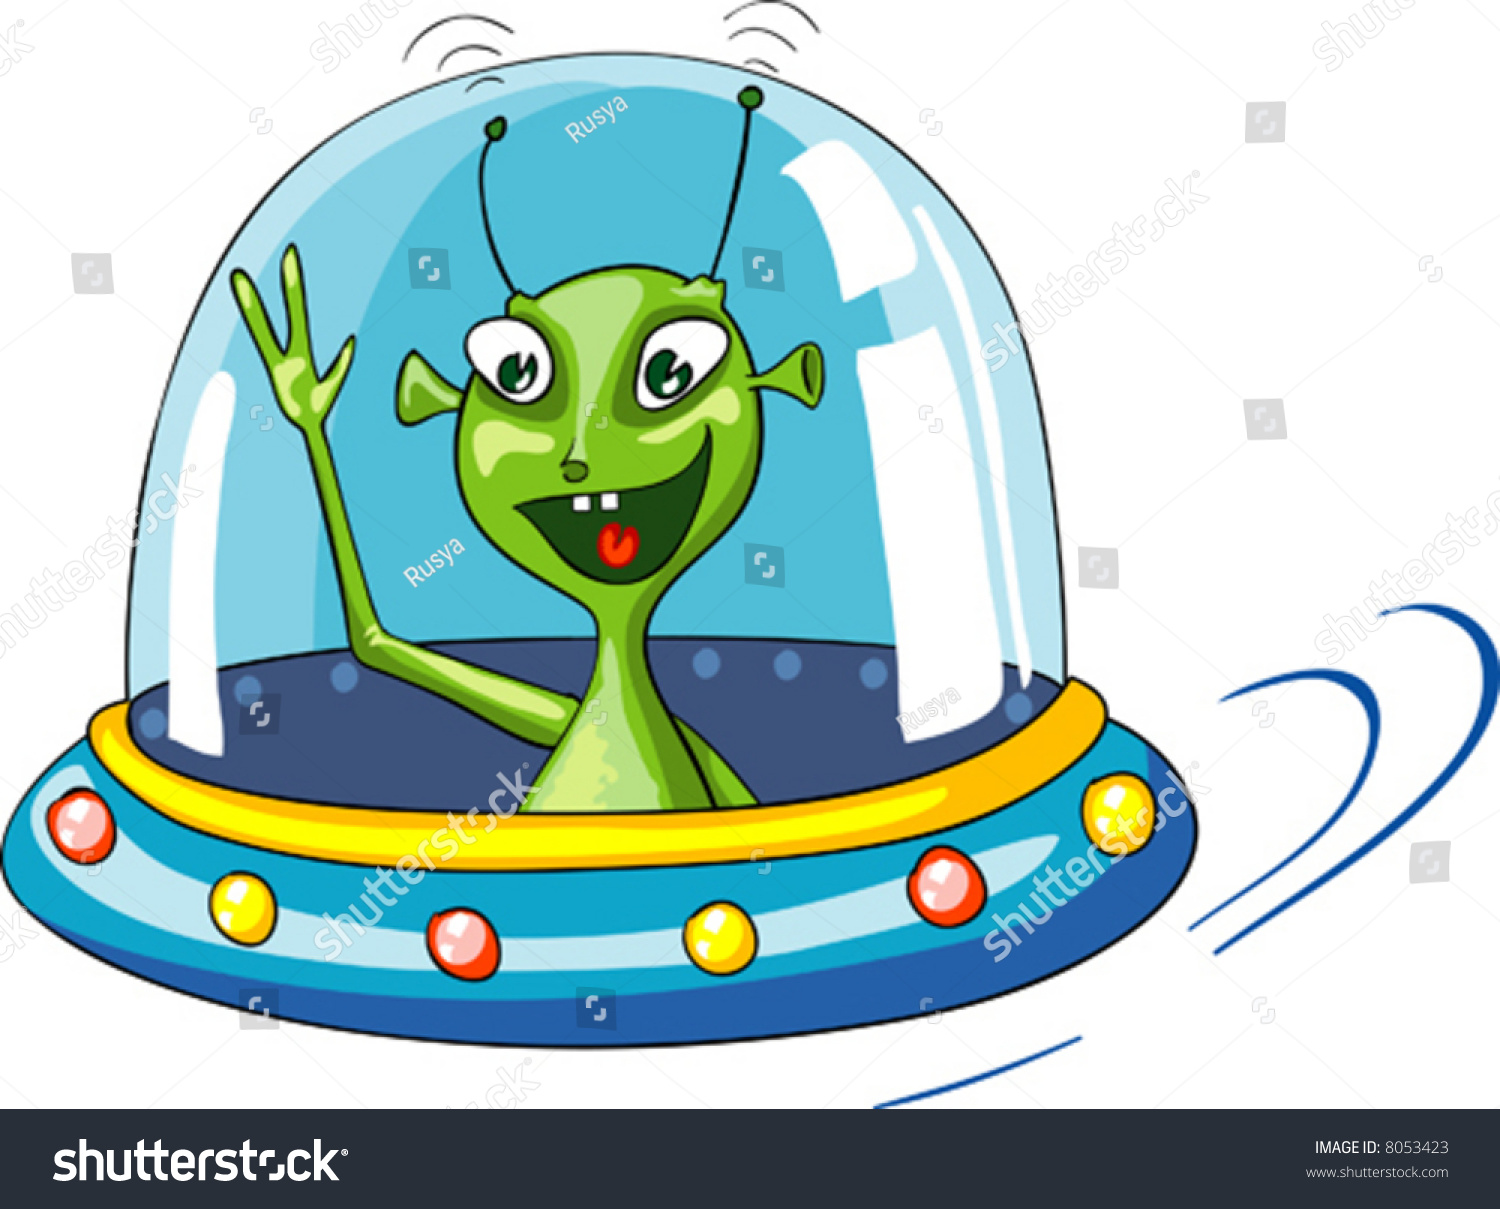 Vector Cartoon Illustration Of Funny Green Alien In